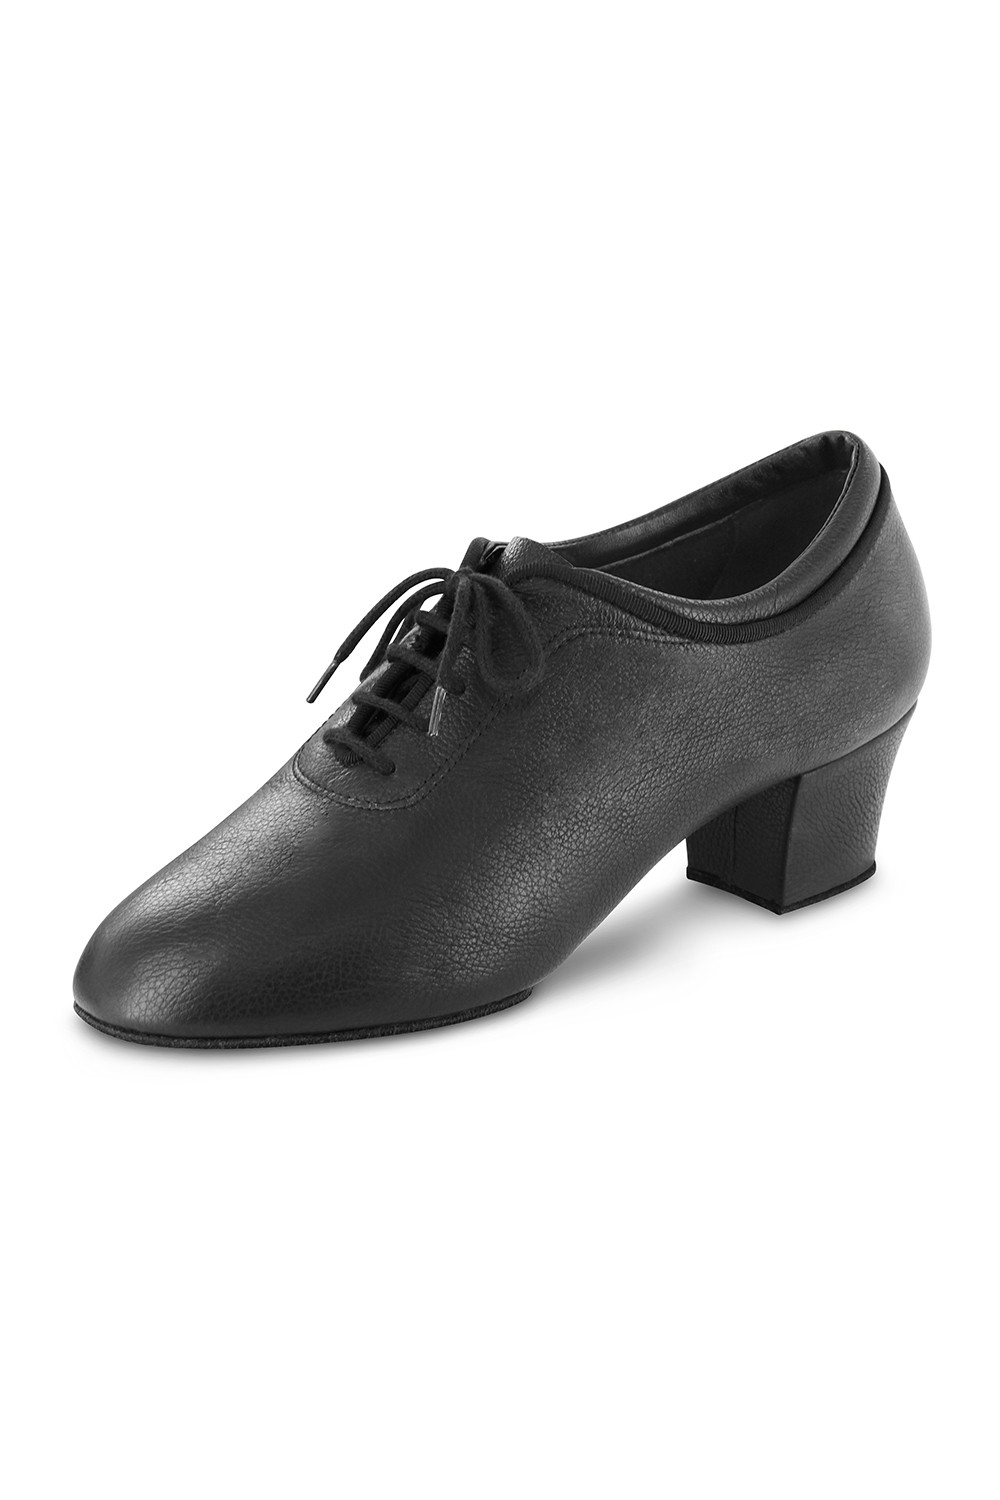 Joaquin - Homme Men's Ballroom & Latin Shoes